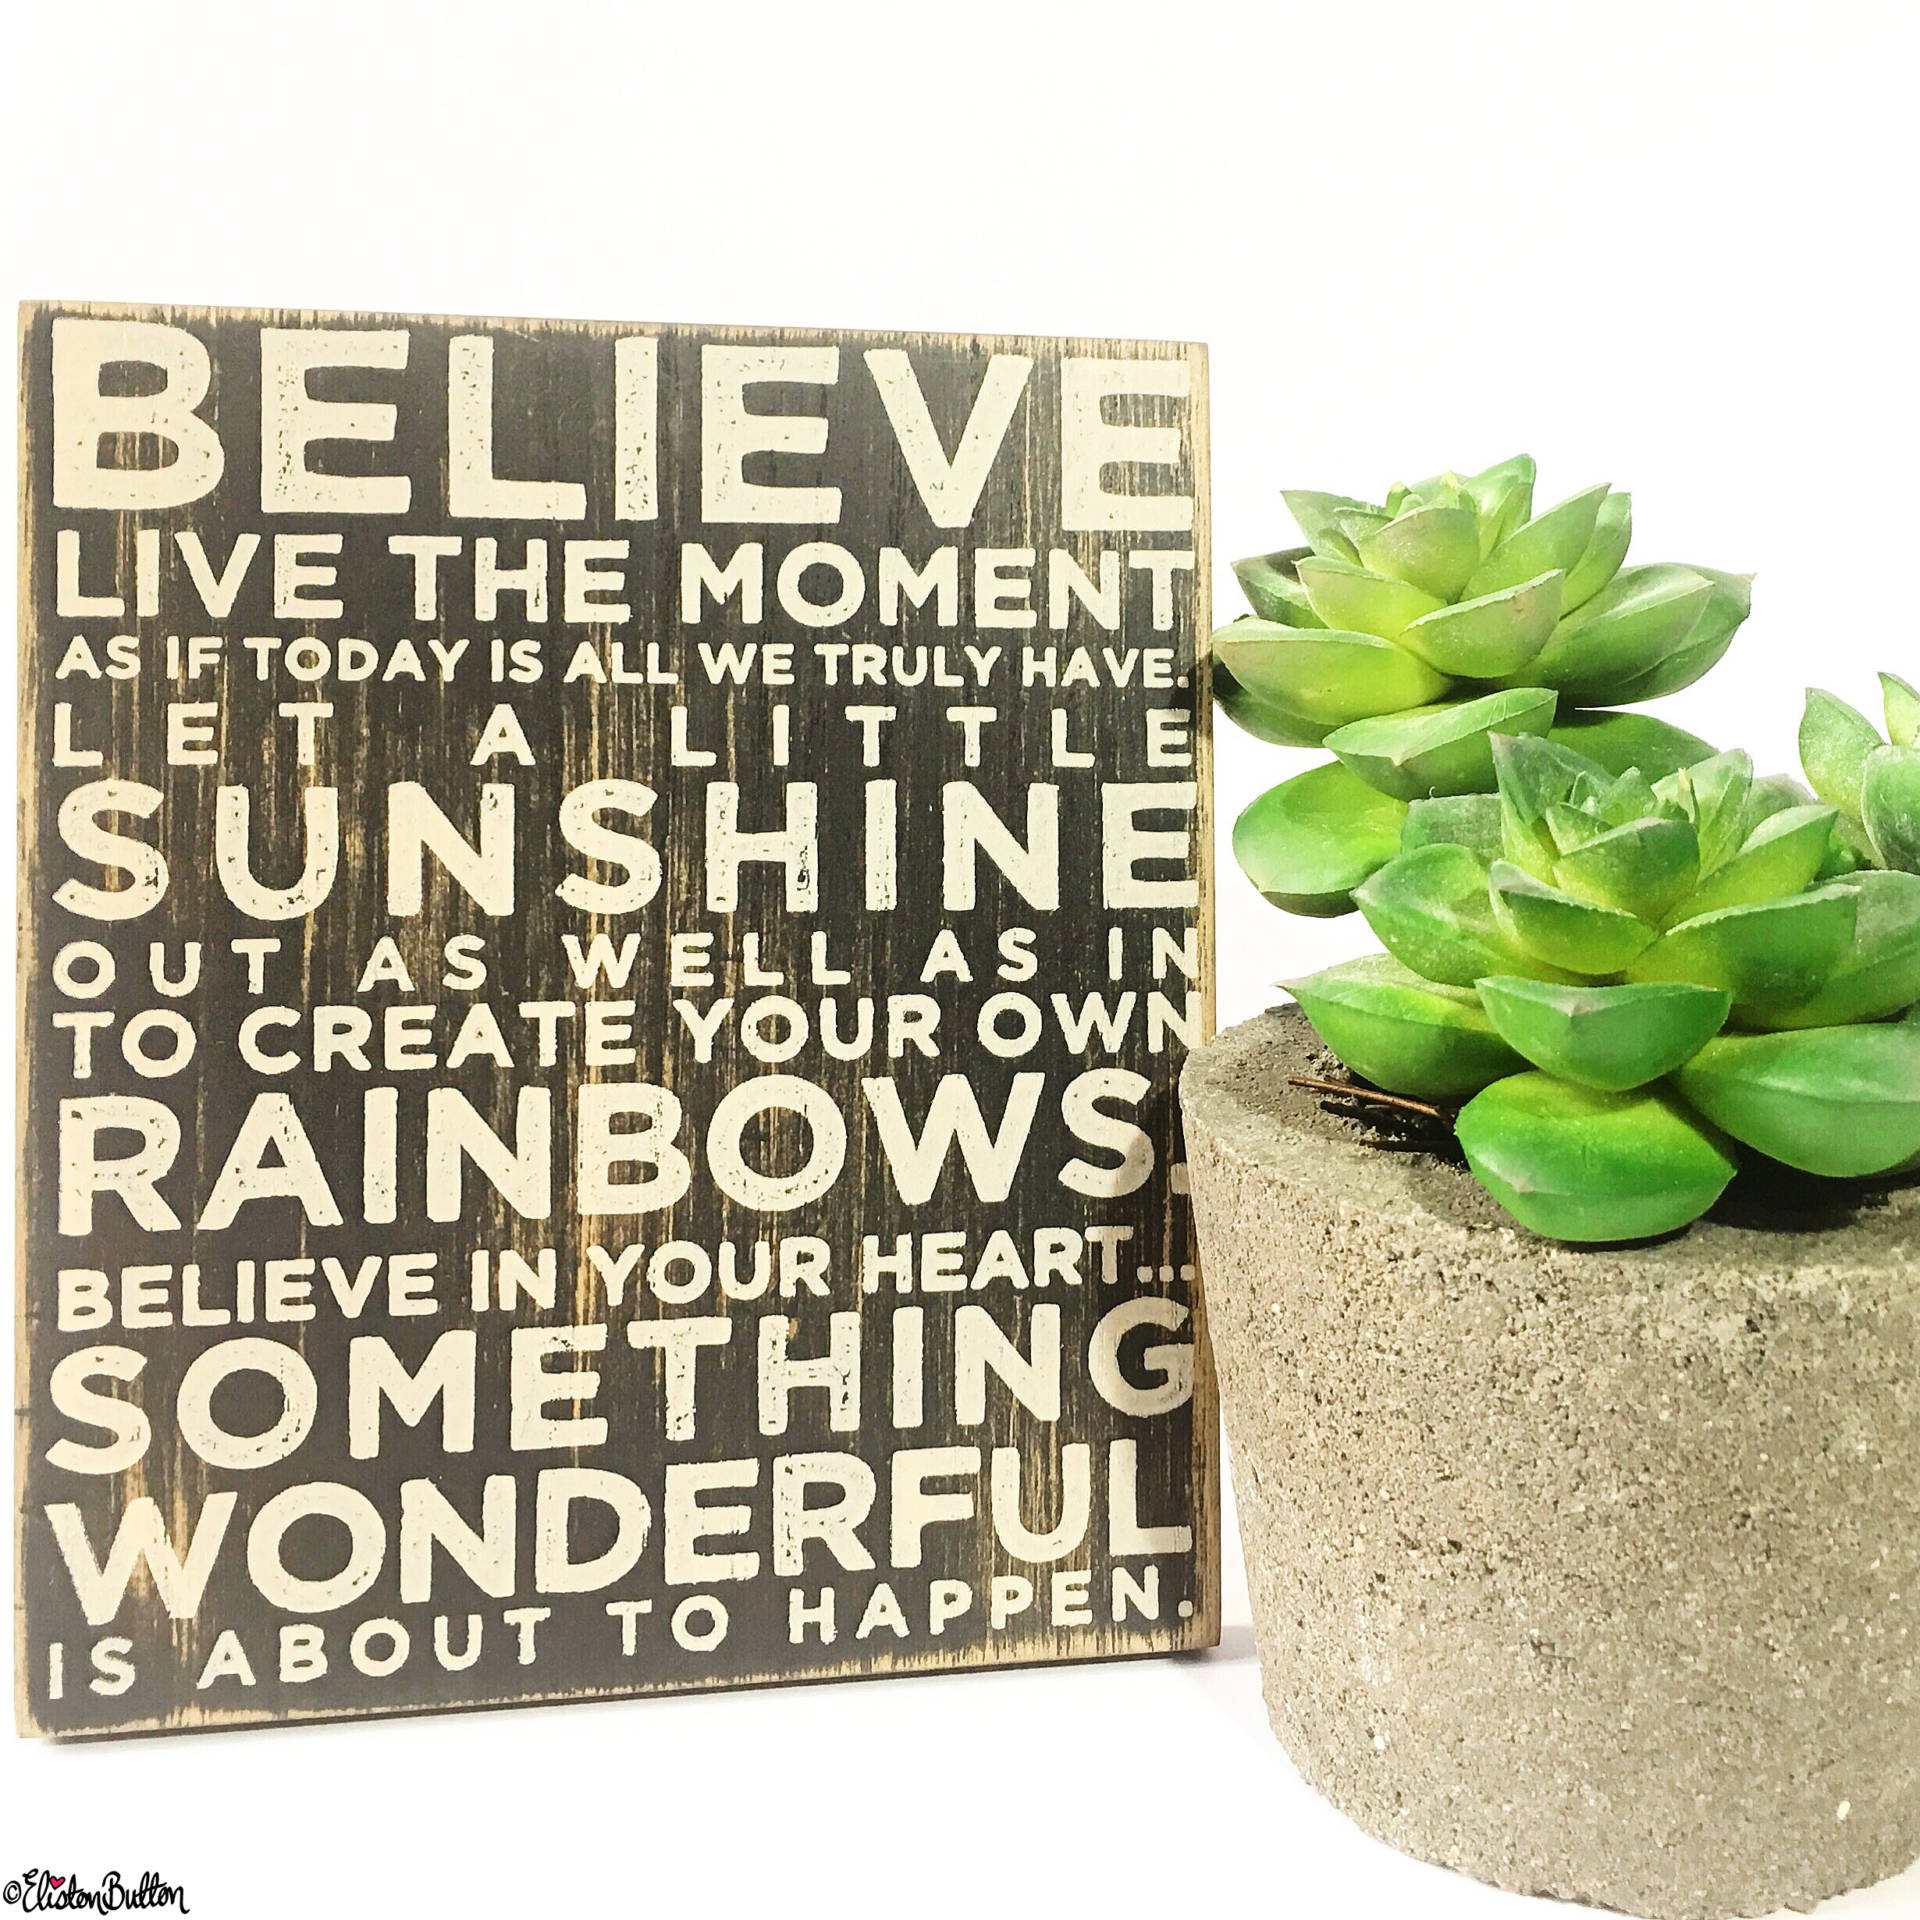 Day 18 - Message - Inspirational Quote and Succulents! - Photo-a-Day – May 2016 at www.elistonbutton.com - Eliston Button - That Crafty Kid – Art, Design, Craft & Adventure.